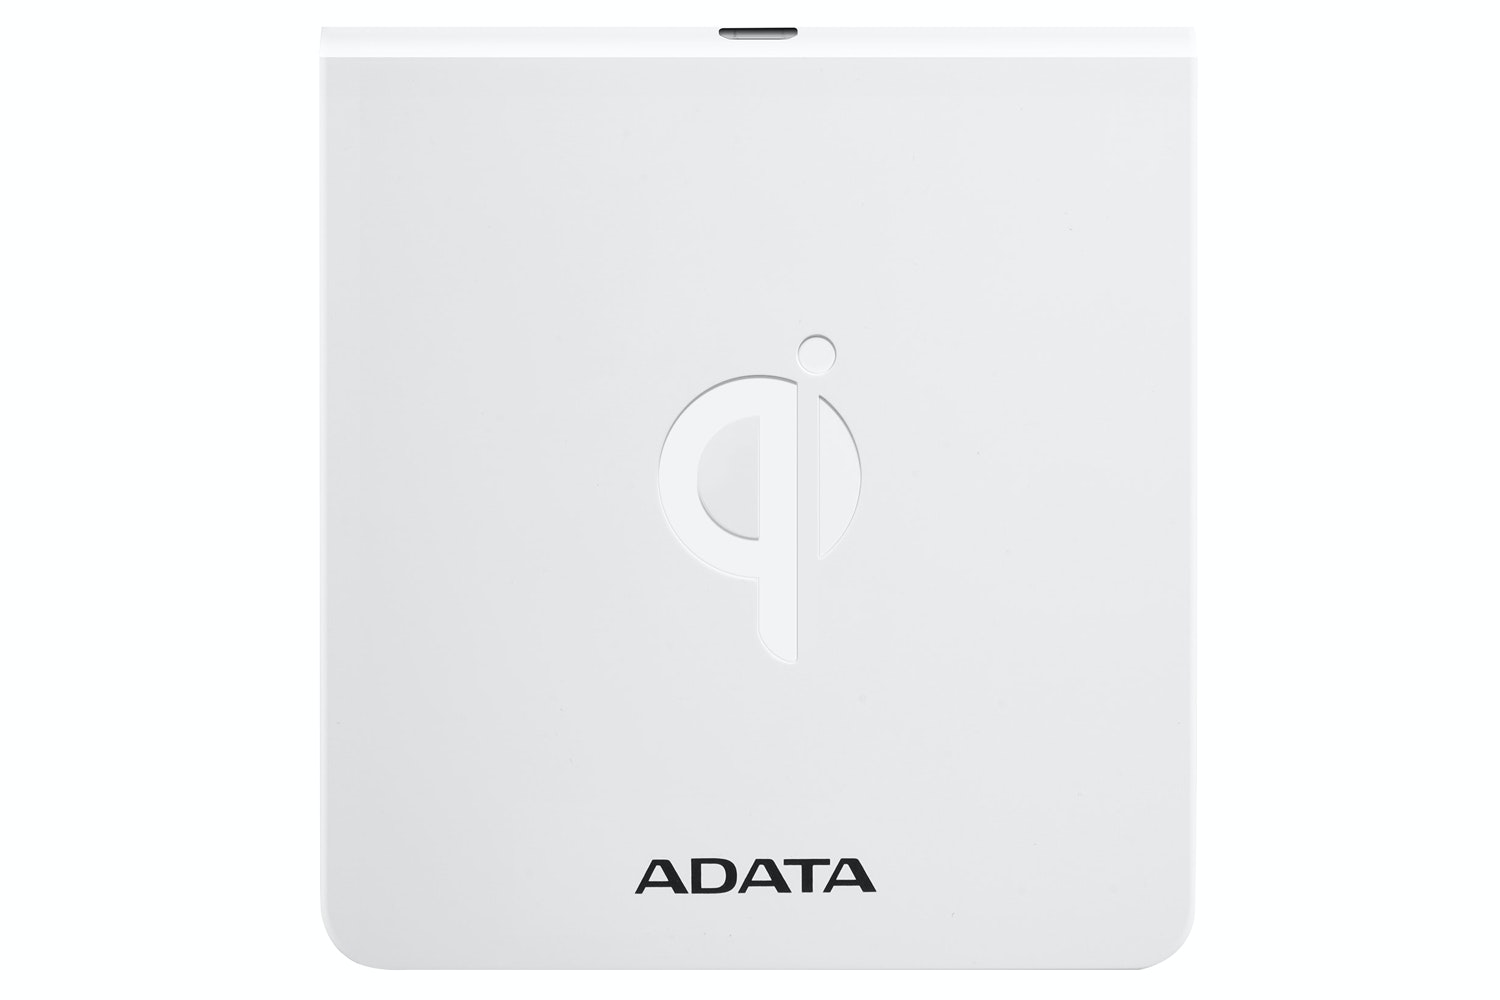 ADATA CW0050 Wireless Charging Pad | White